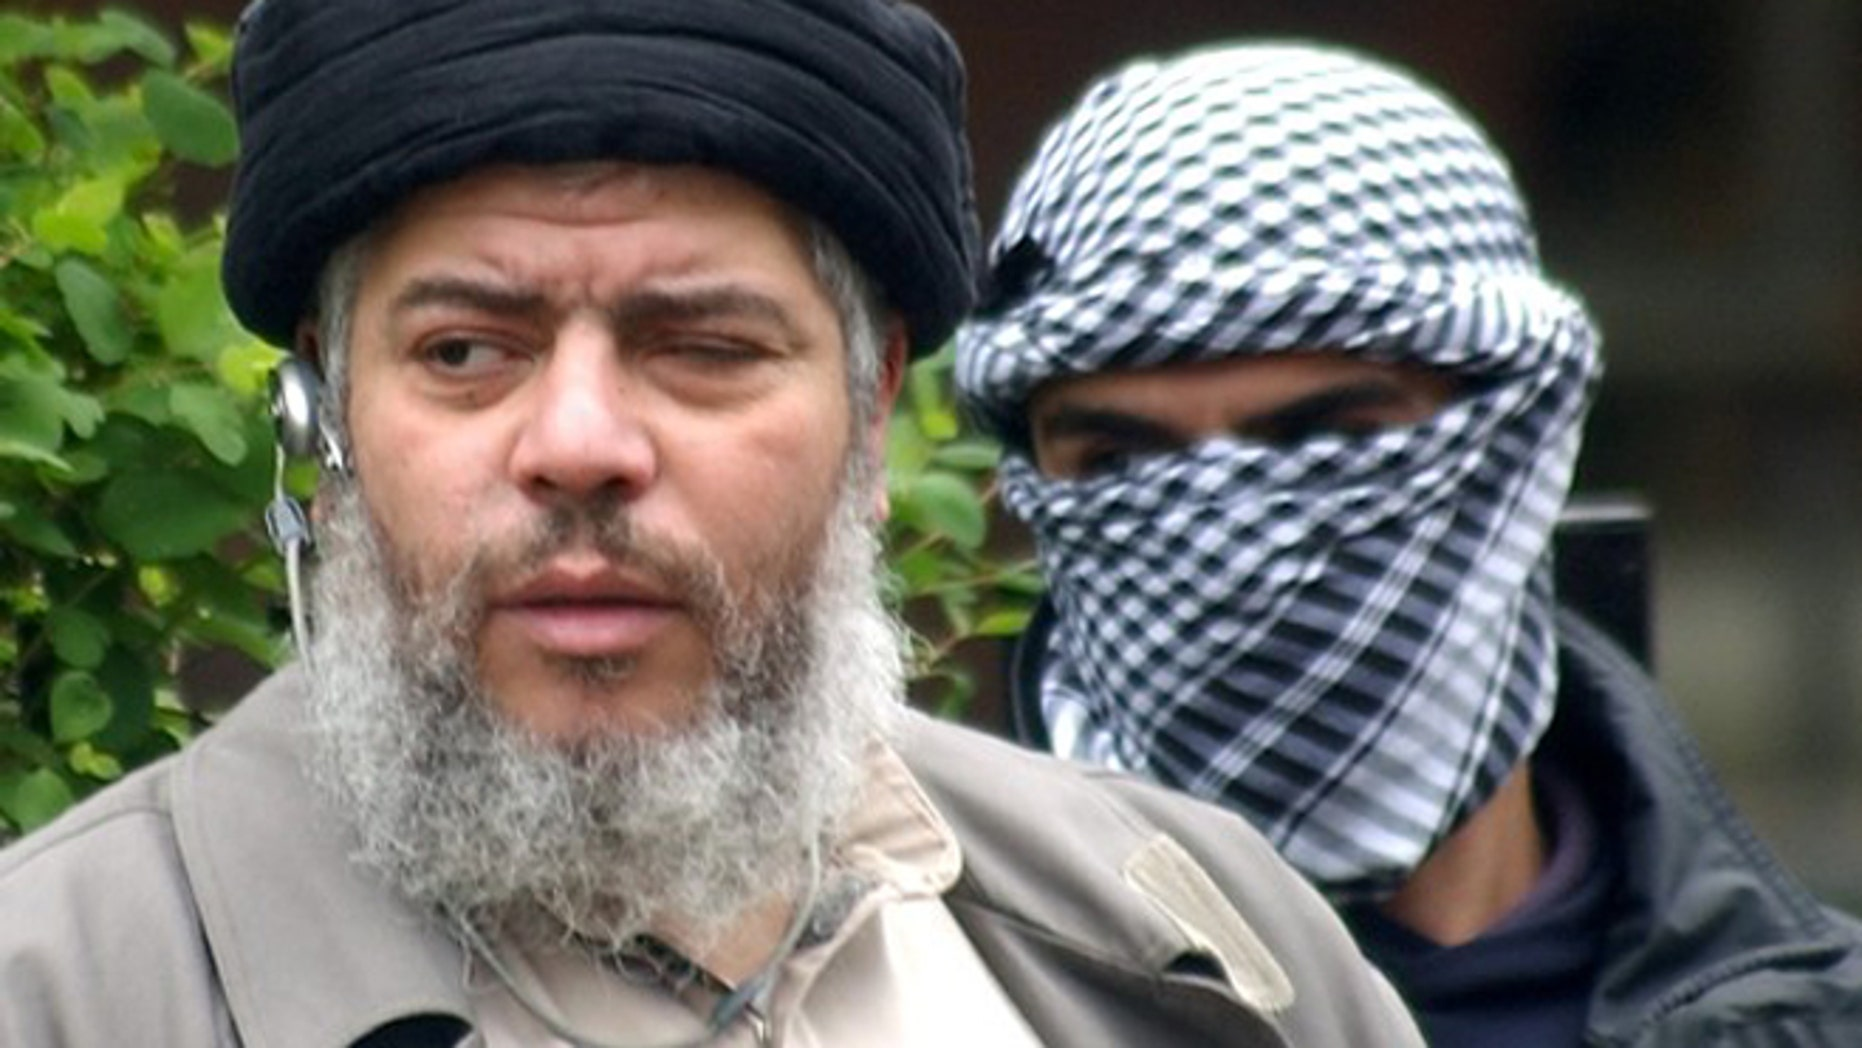 FILE 2004: Abu Hamza al-Masri arrives with a masked bodyguard to conduct prayers in the street outside the closed Finsbury Park Mosque in London